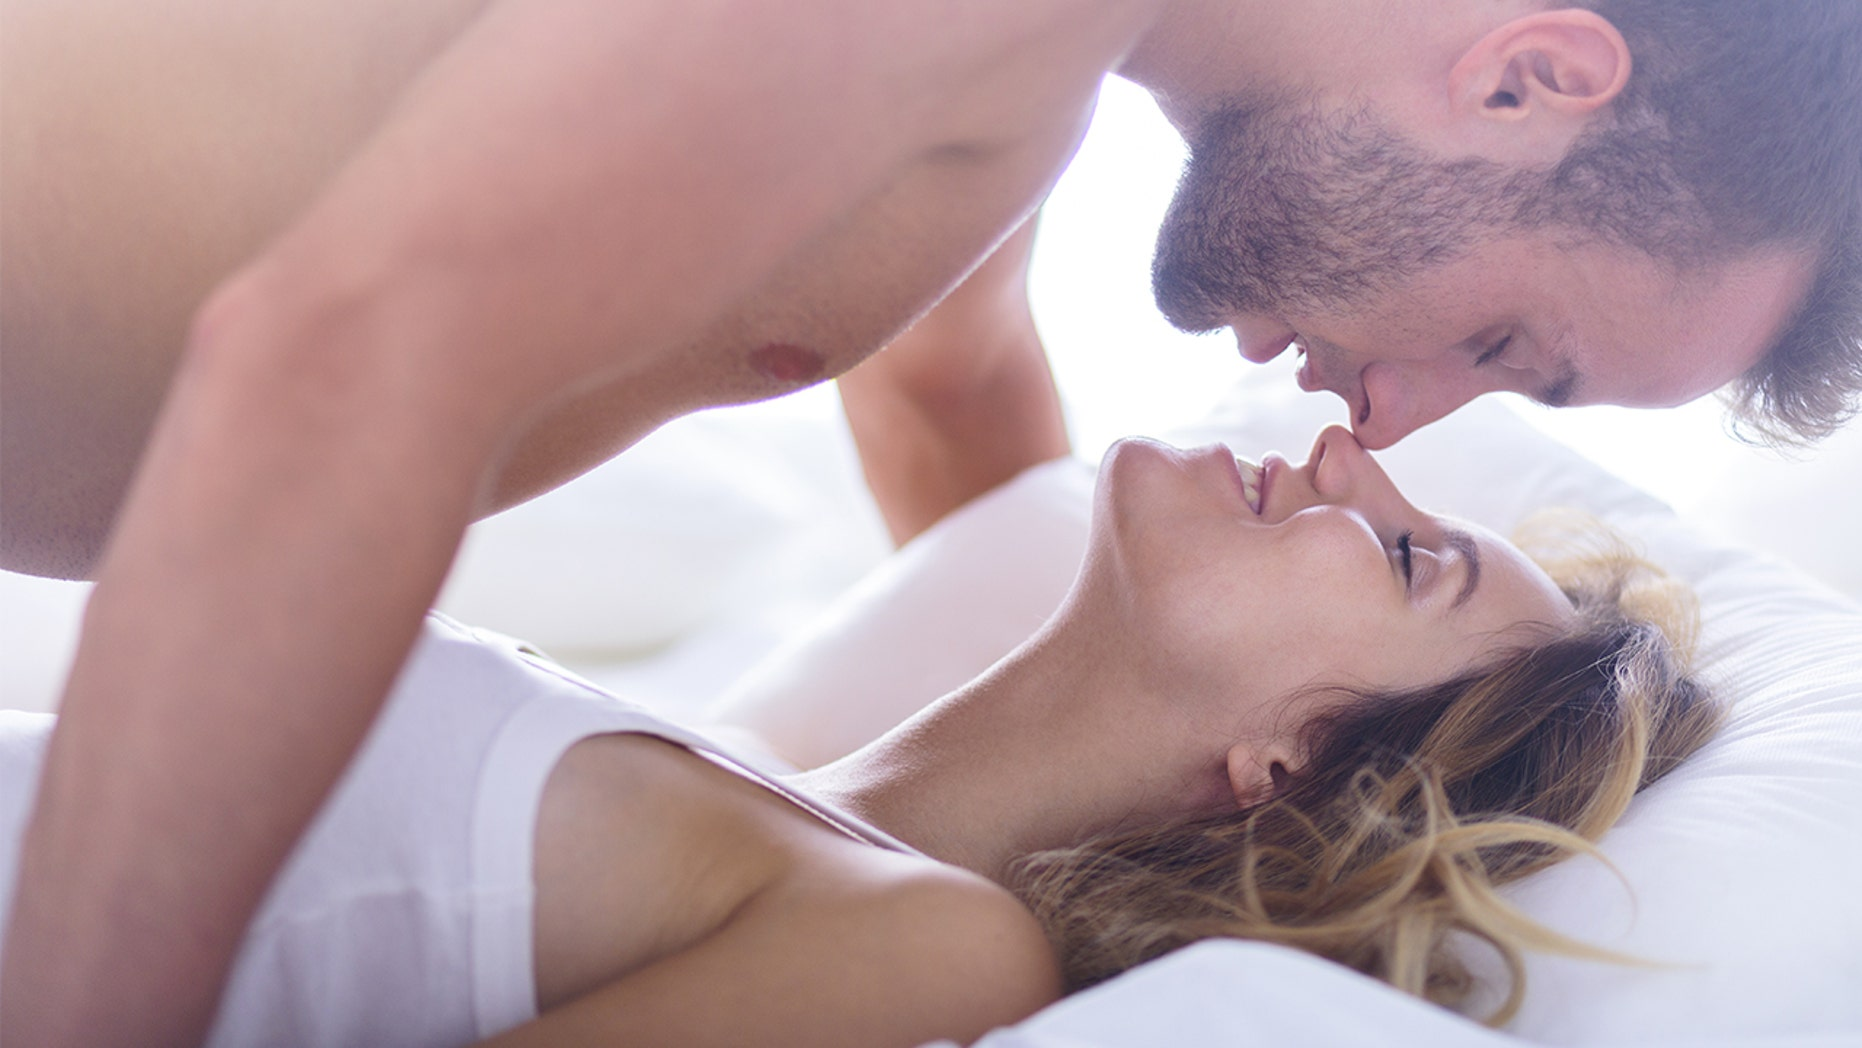 How to make passionate sex